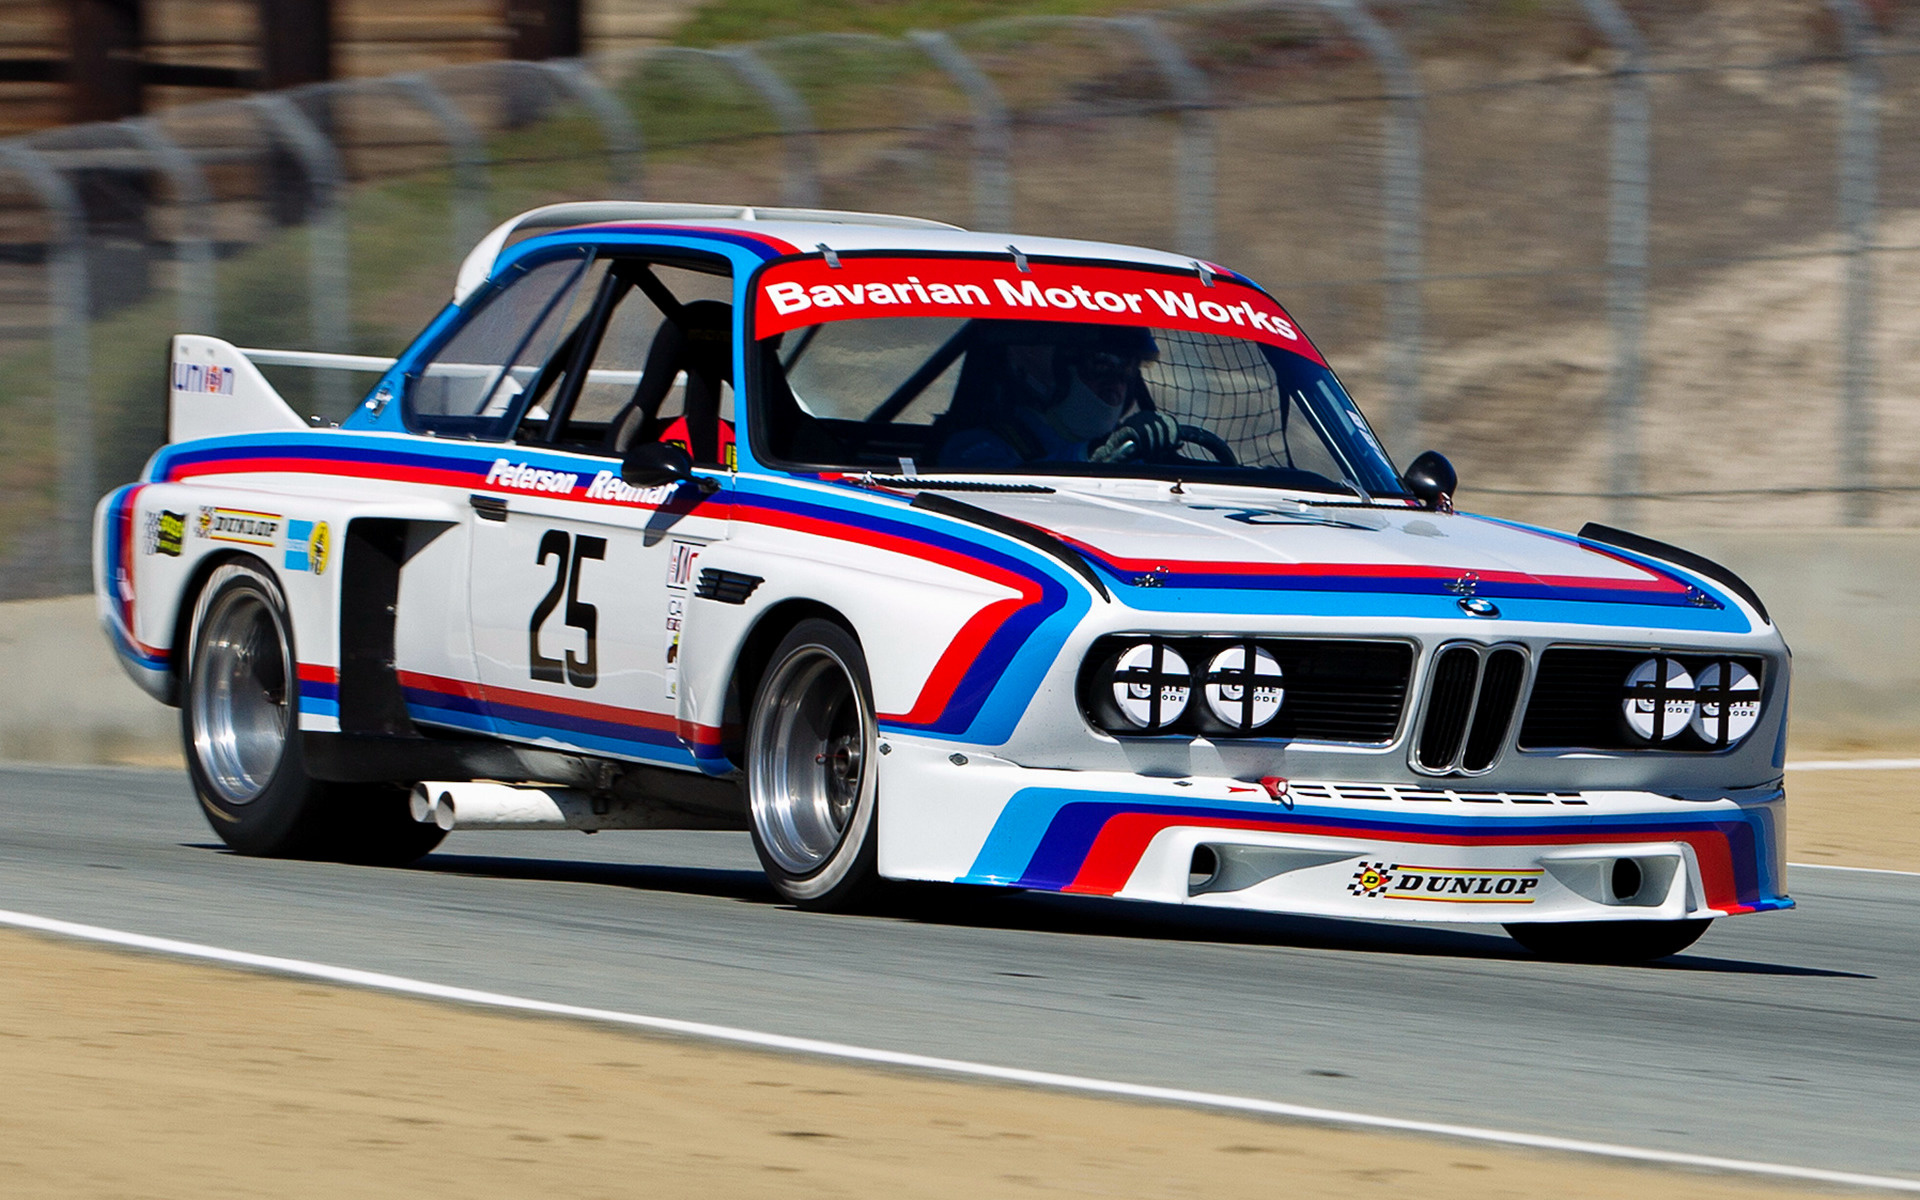 Bmw 3 0 Csl >> 1975 BMW 3.0 CSL IMSA [2275985] - Wallpapers and HD Images ...